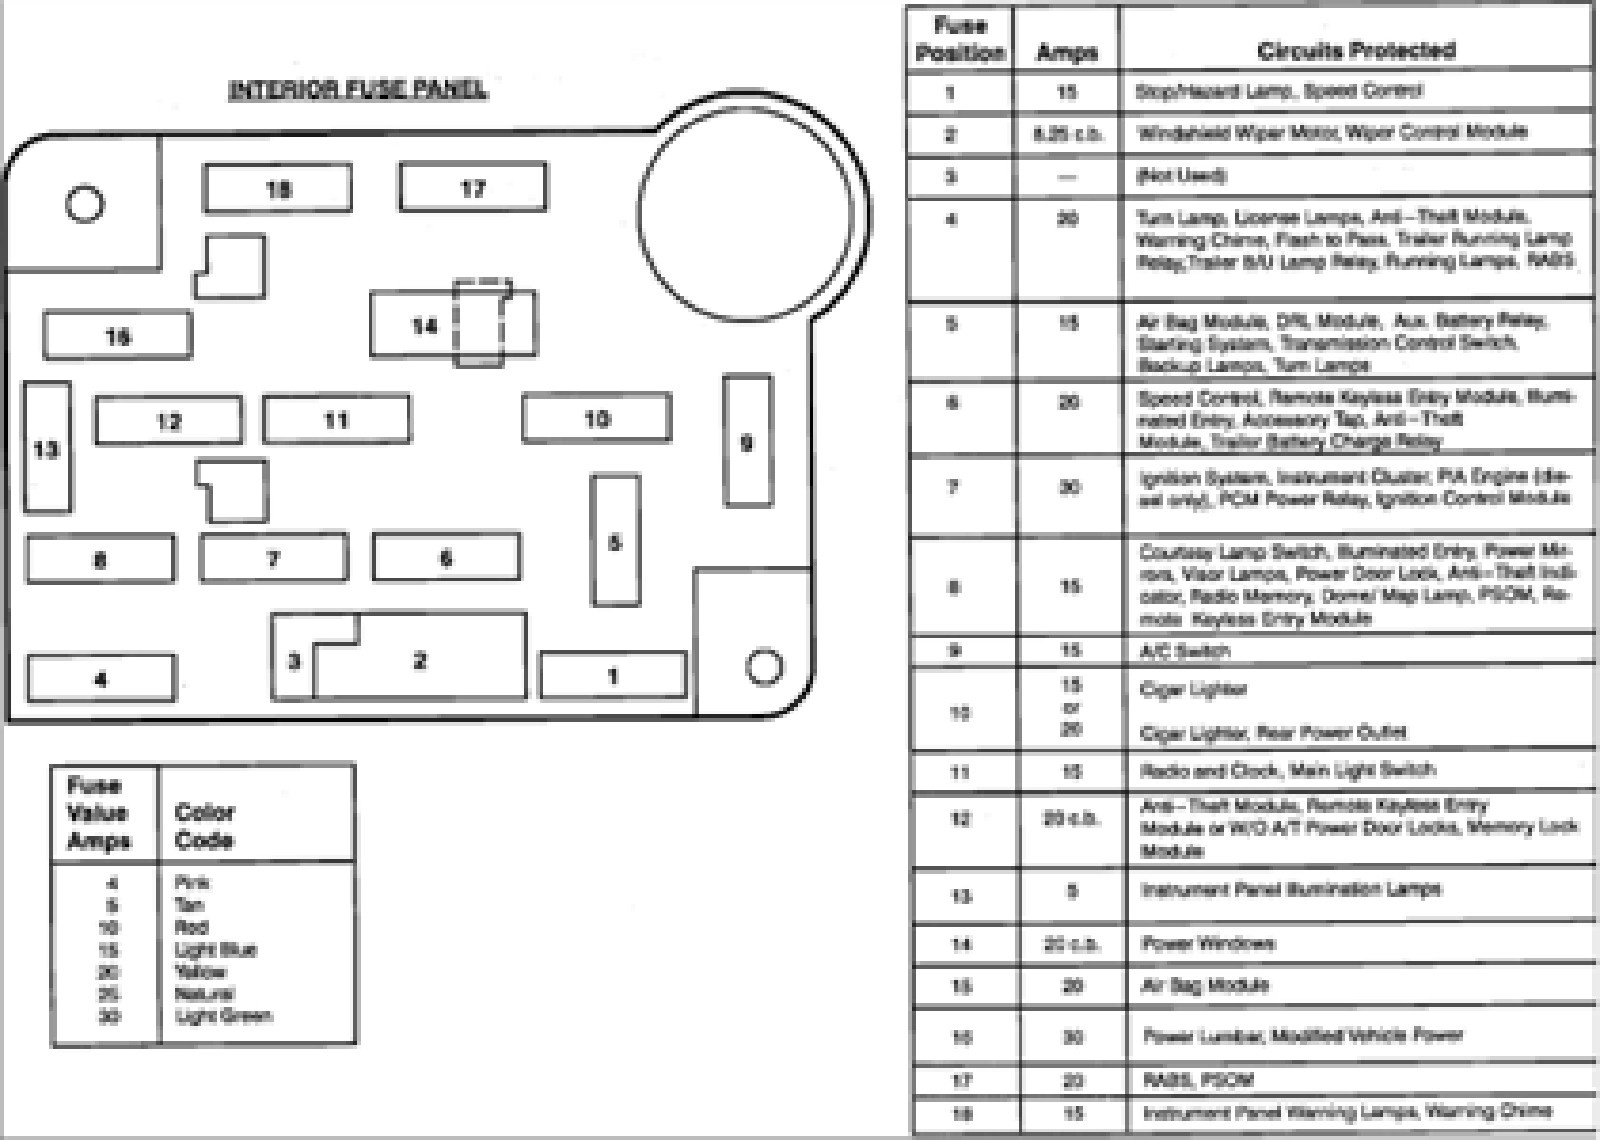 1997 ford van fuse box diagram wiring data rh unroutine co